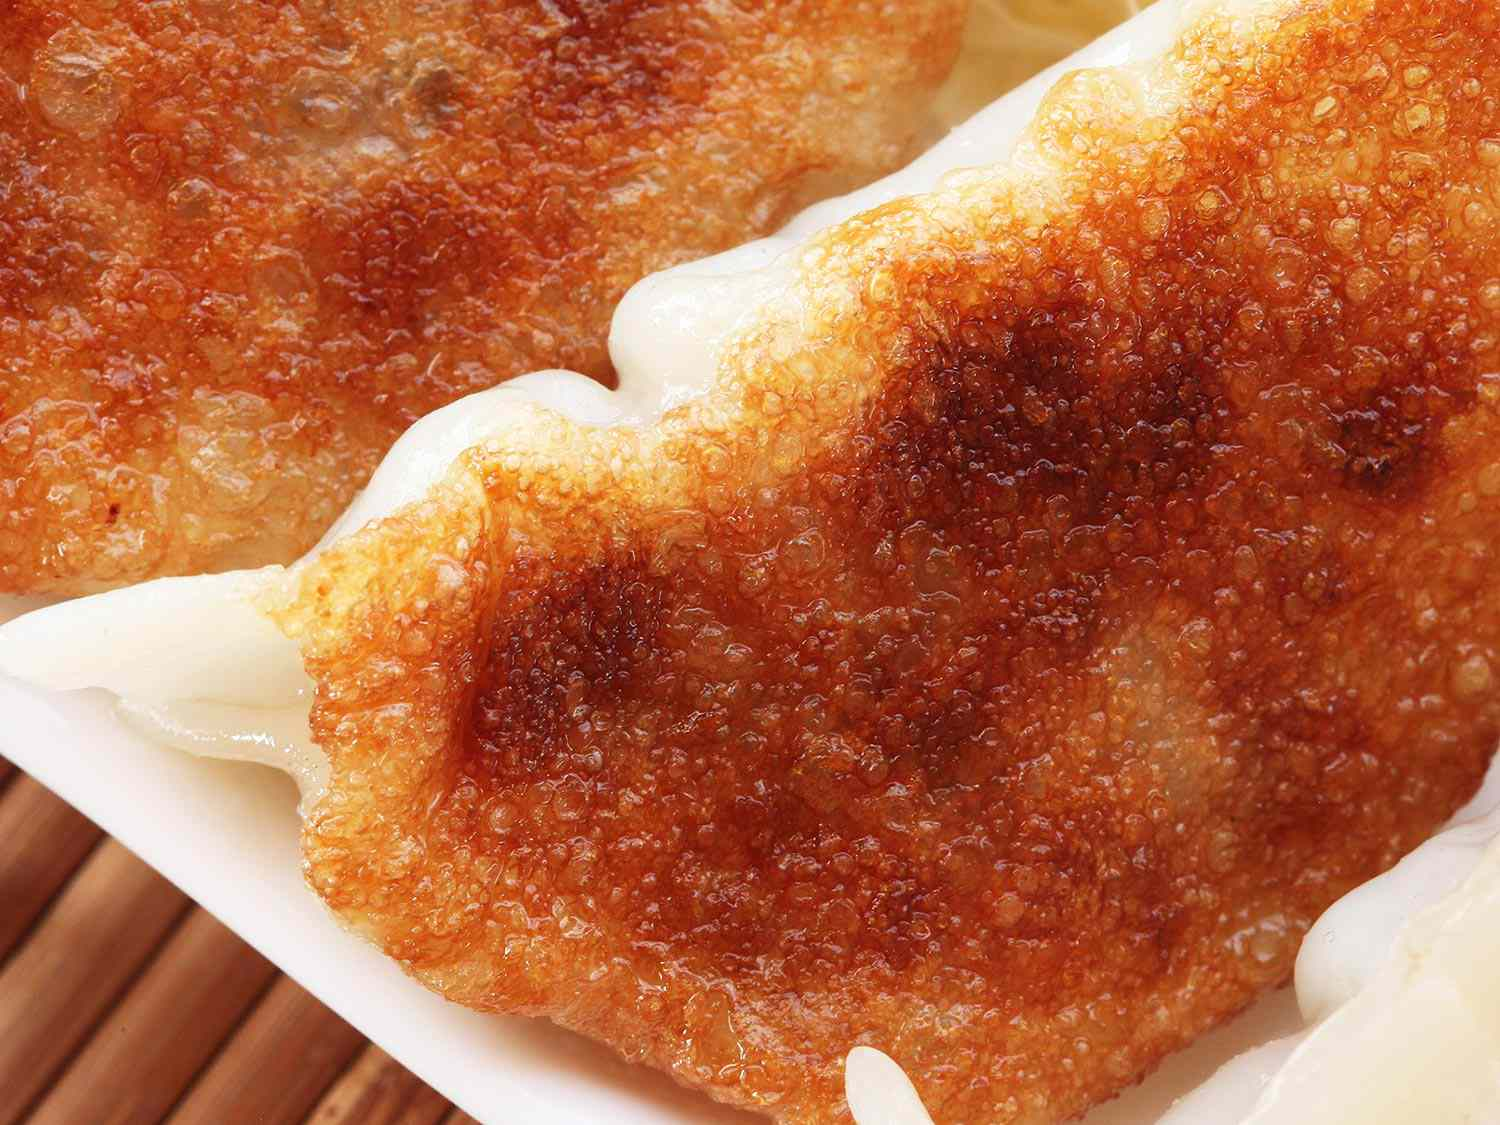 A close up of the bottom of a twice-fried and steamed dumpling. The dumpling is golden brown with lots of crisp texture.